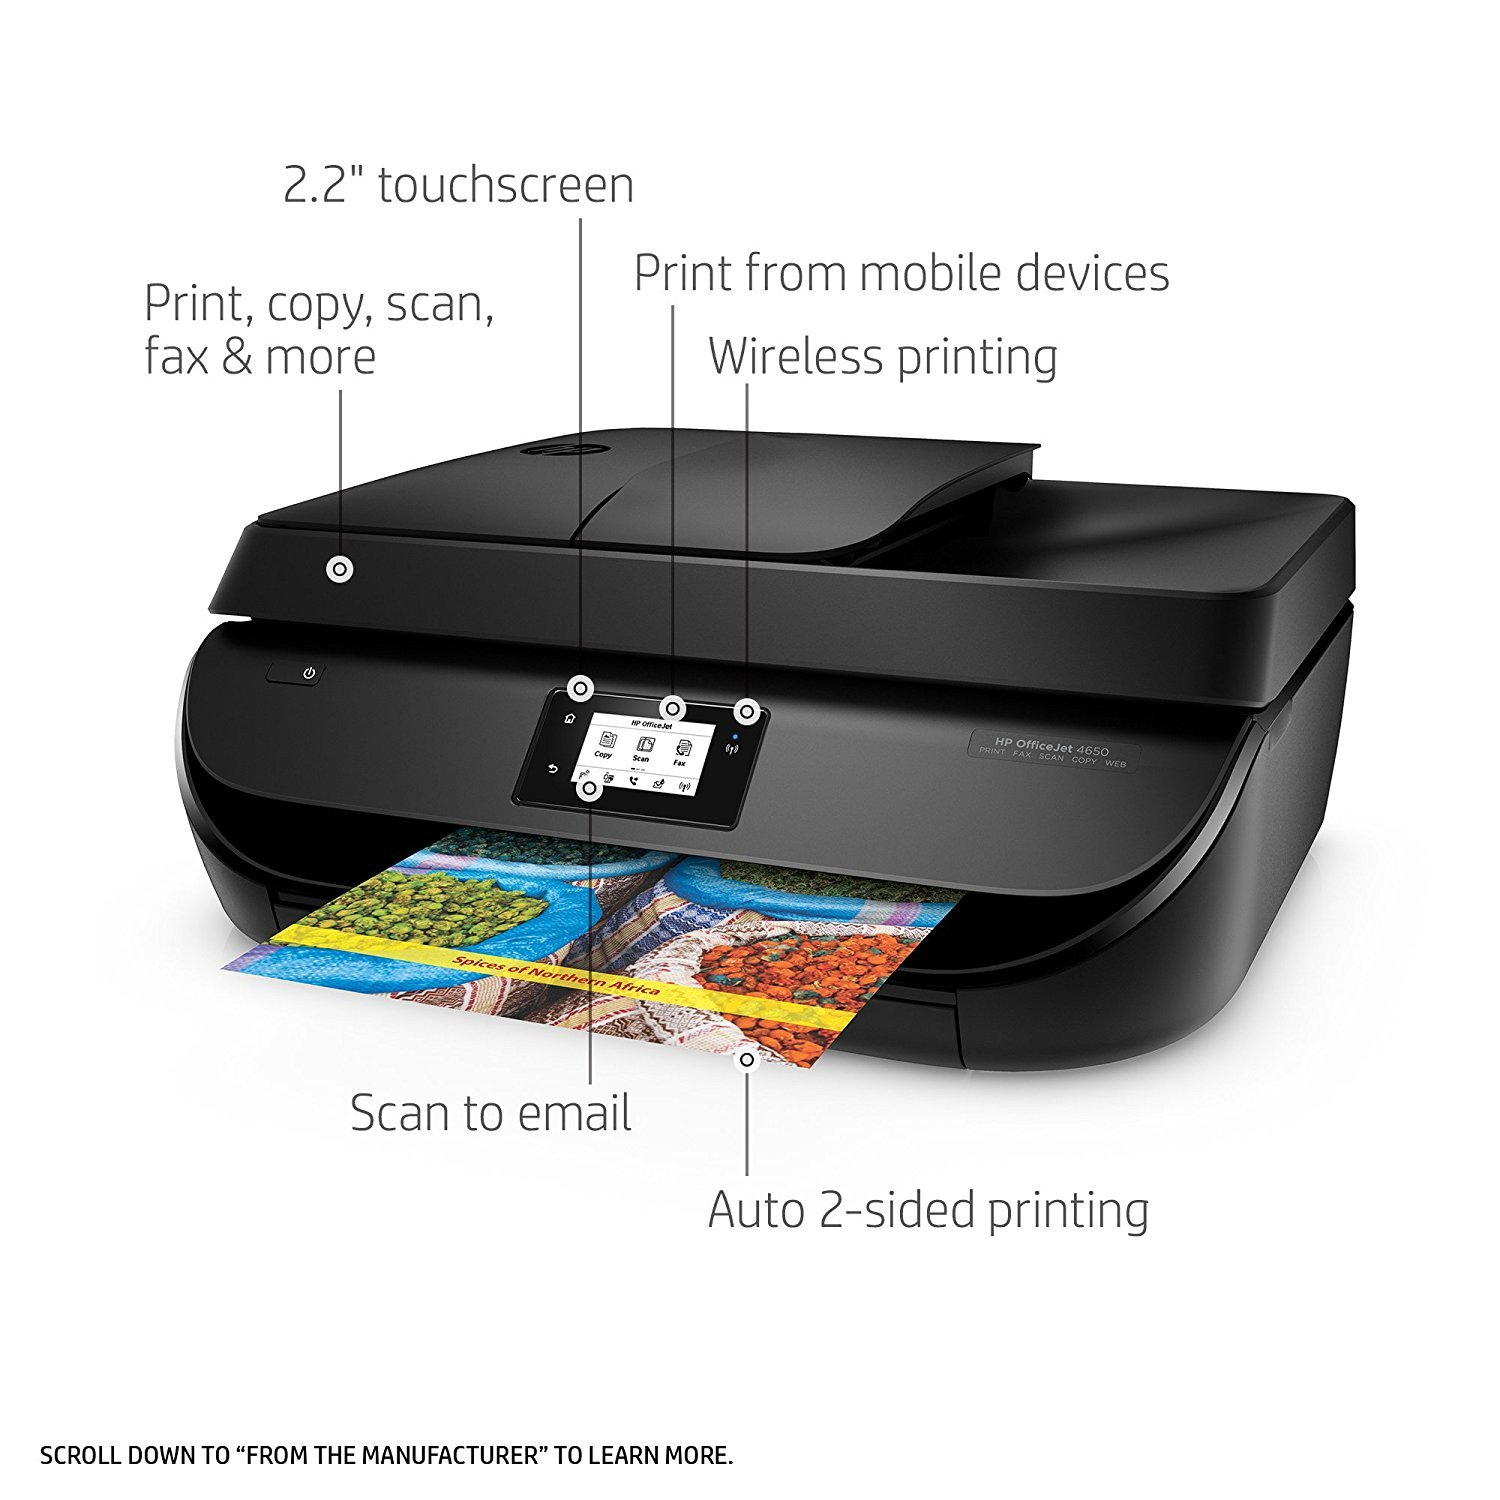 HP OfficeJet 4650 Wireless All-in-One Photo Printer, Copier and Scanner - Black (Certified Refurbished) by HP (Image #2)